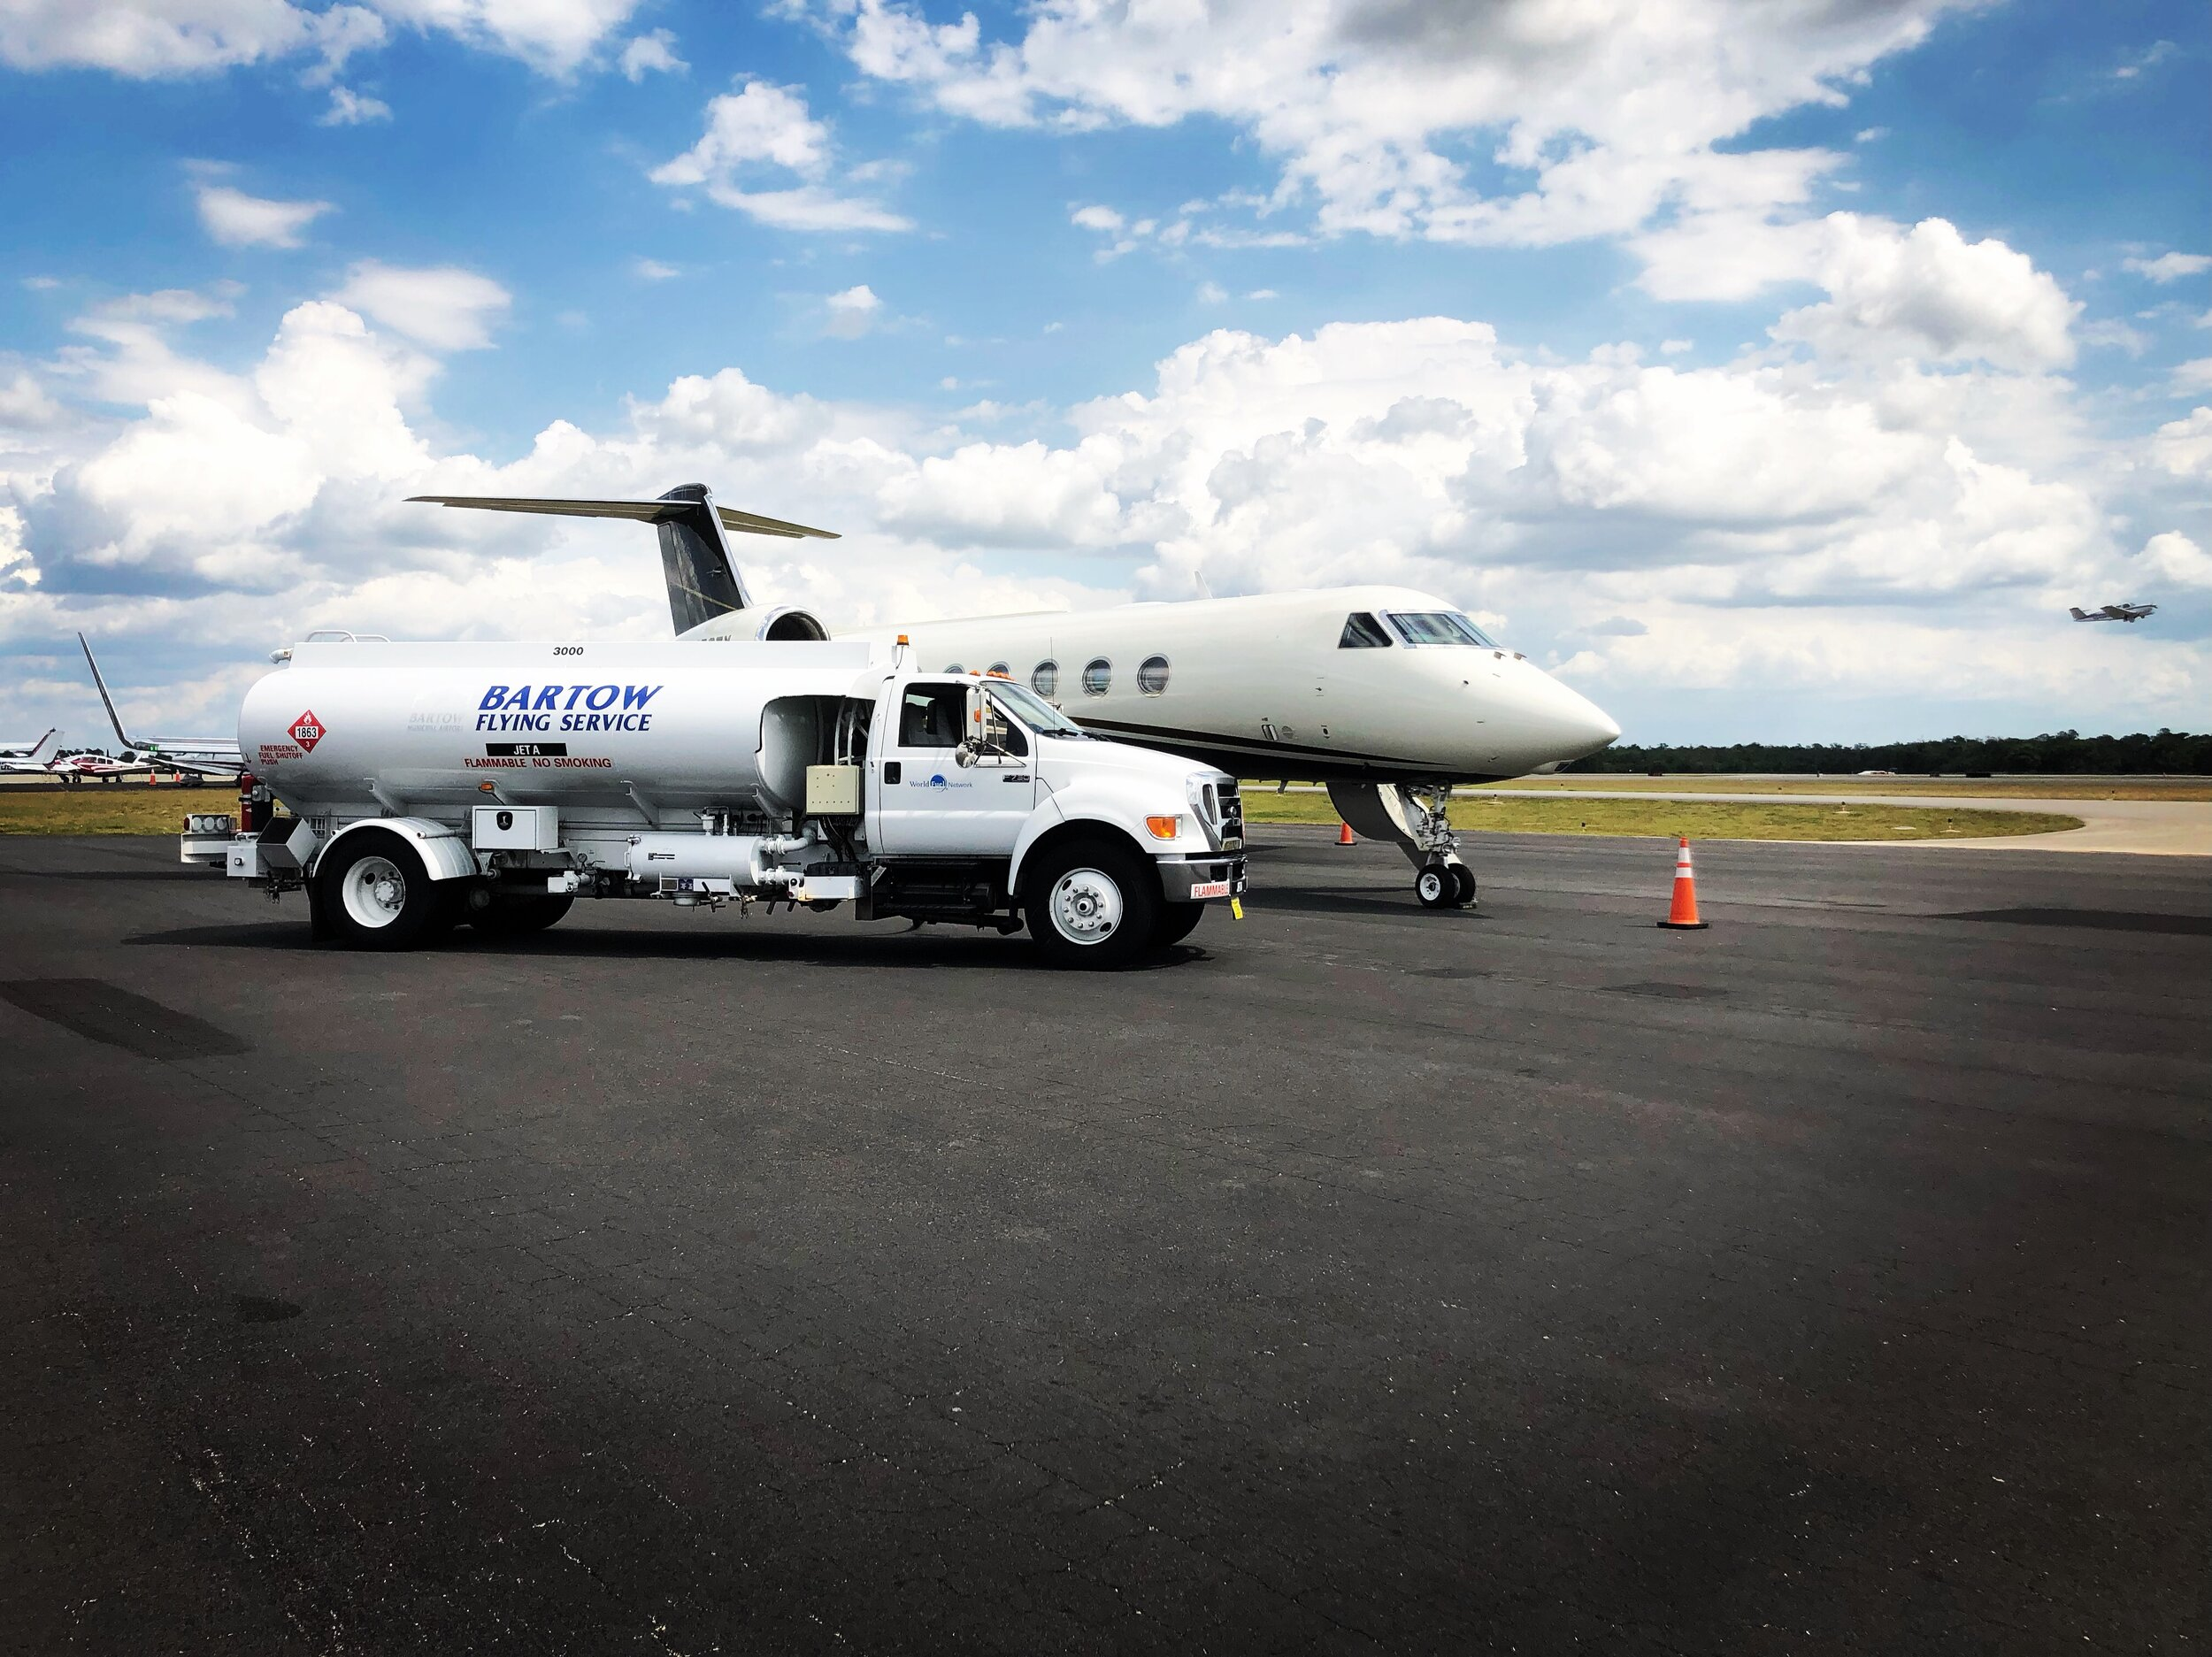 Full Service Fueling -